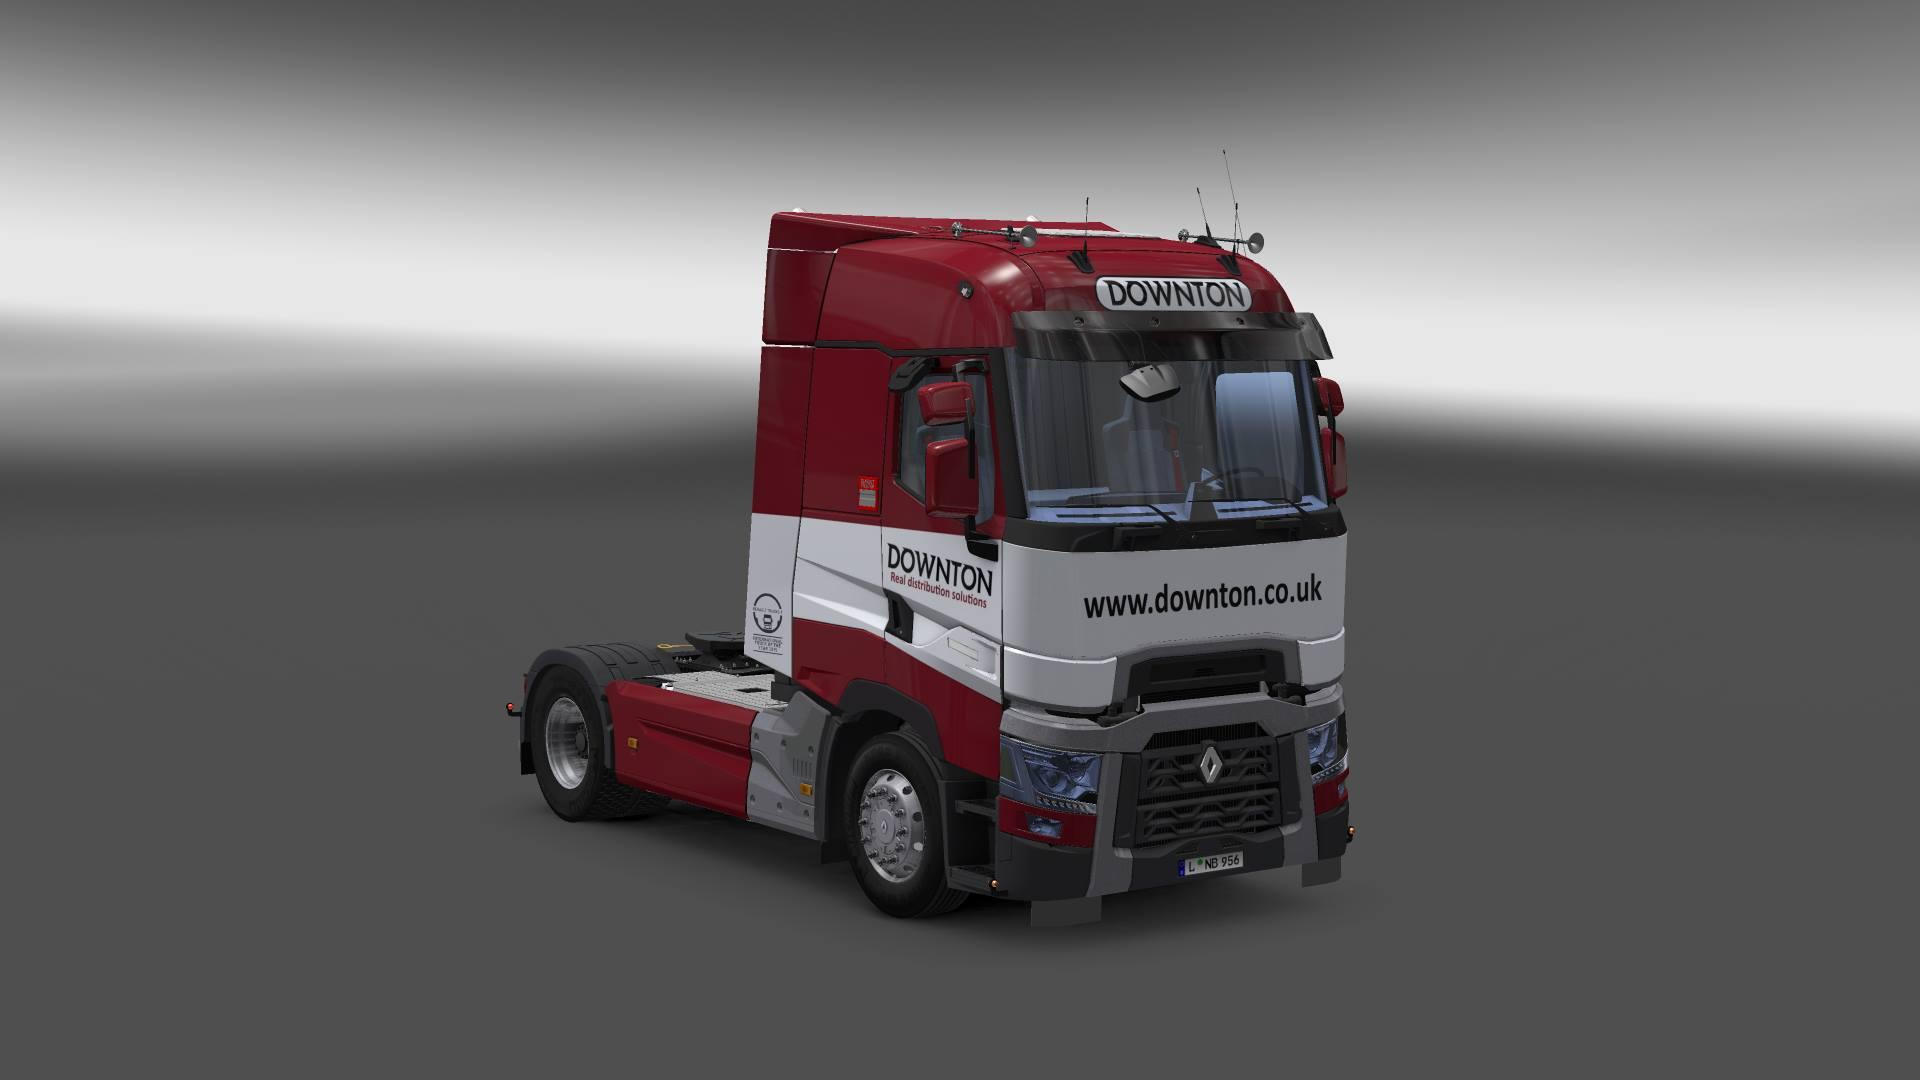 DOWNTON DELIVERS TRUCK SKIN PACK V1.0 For ETS2 -Euro Truck Simulator 2 Mods